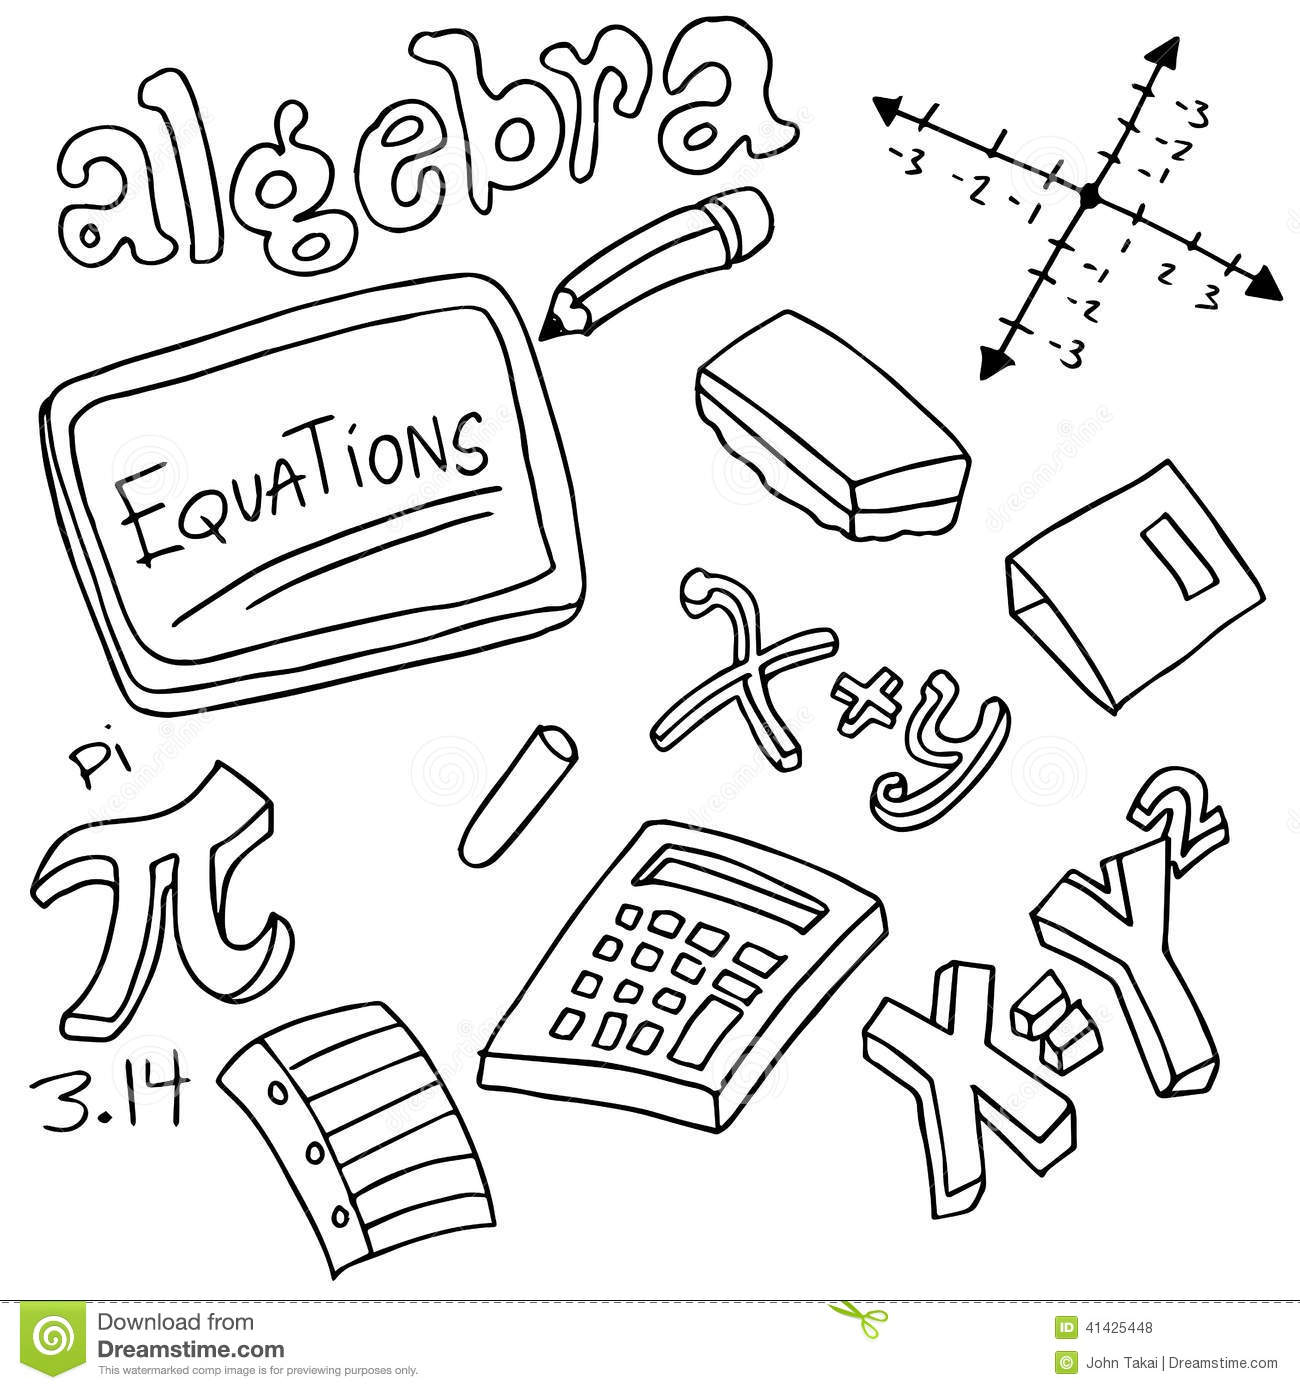 Algebra Symbols And Objects Stock Vector - Image: 41425448